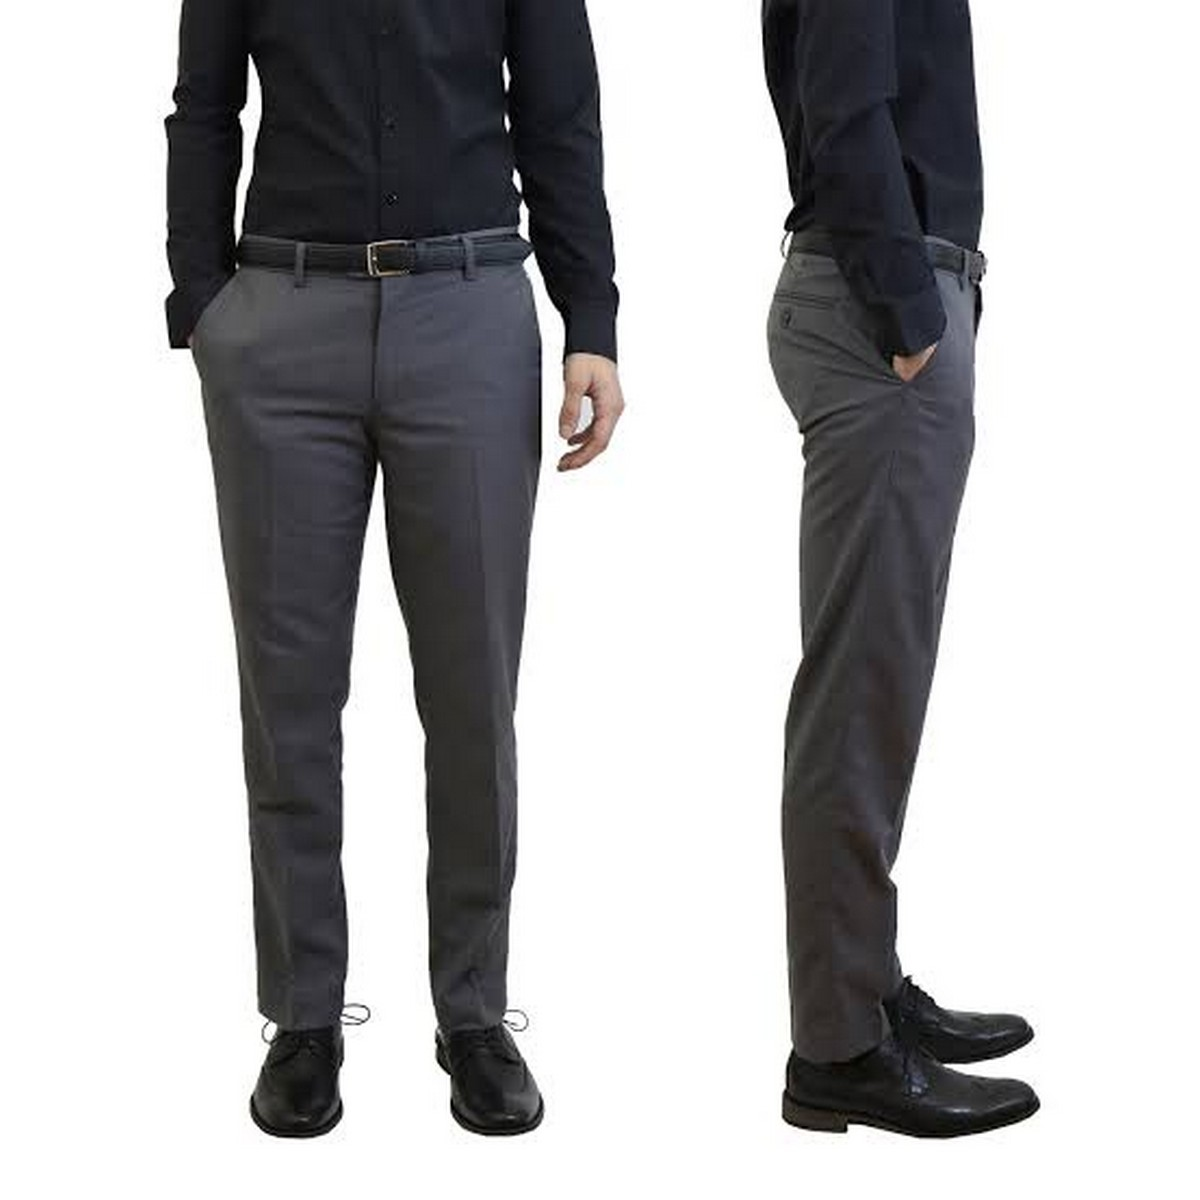 Dress Pant export quality fabric and stitching